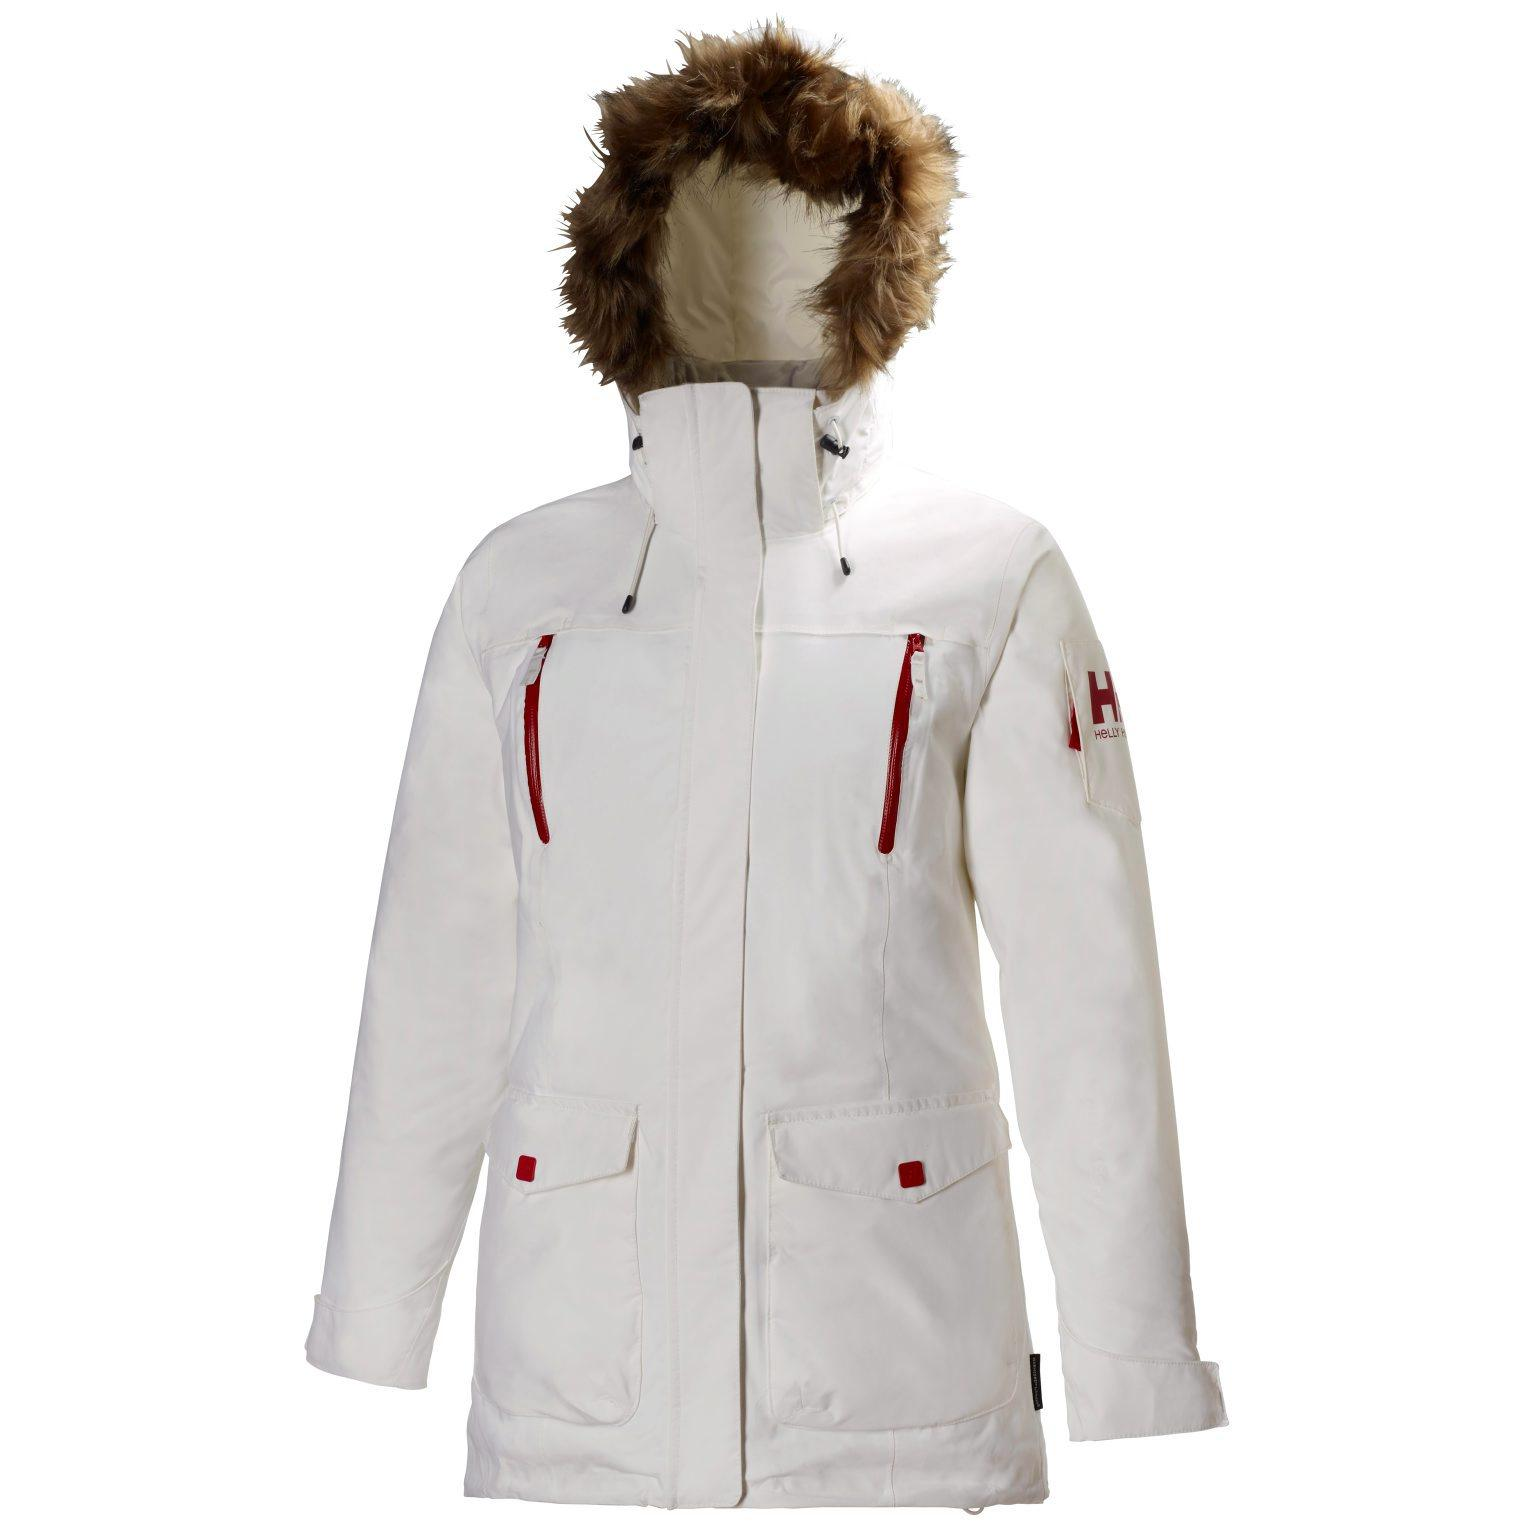 Helly Hansen Jacket.jpg